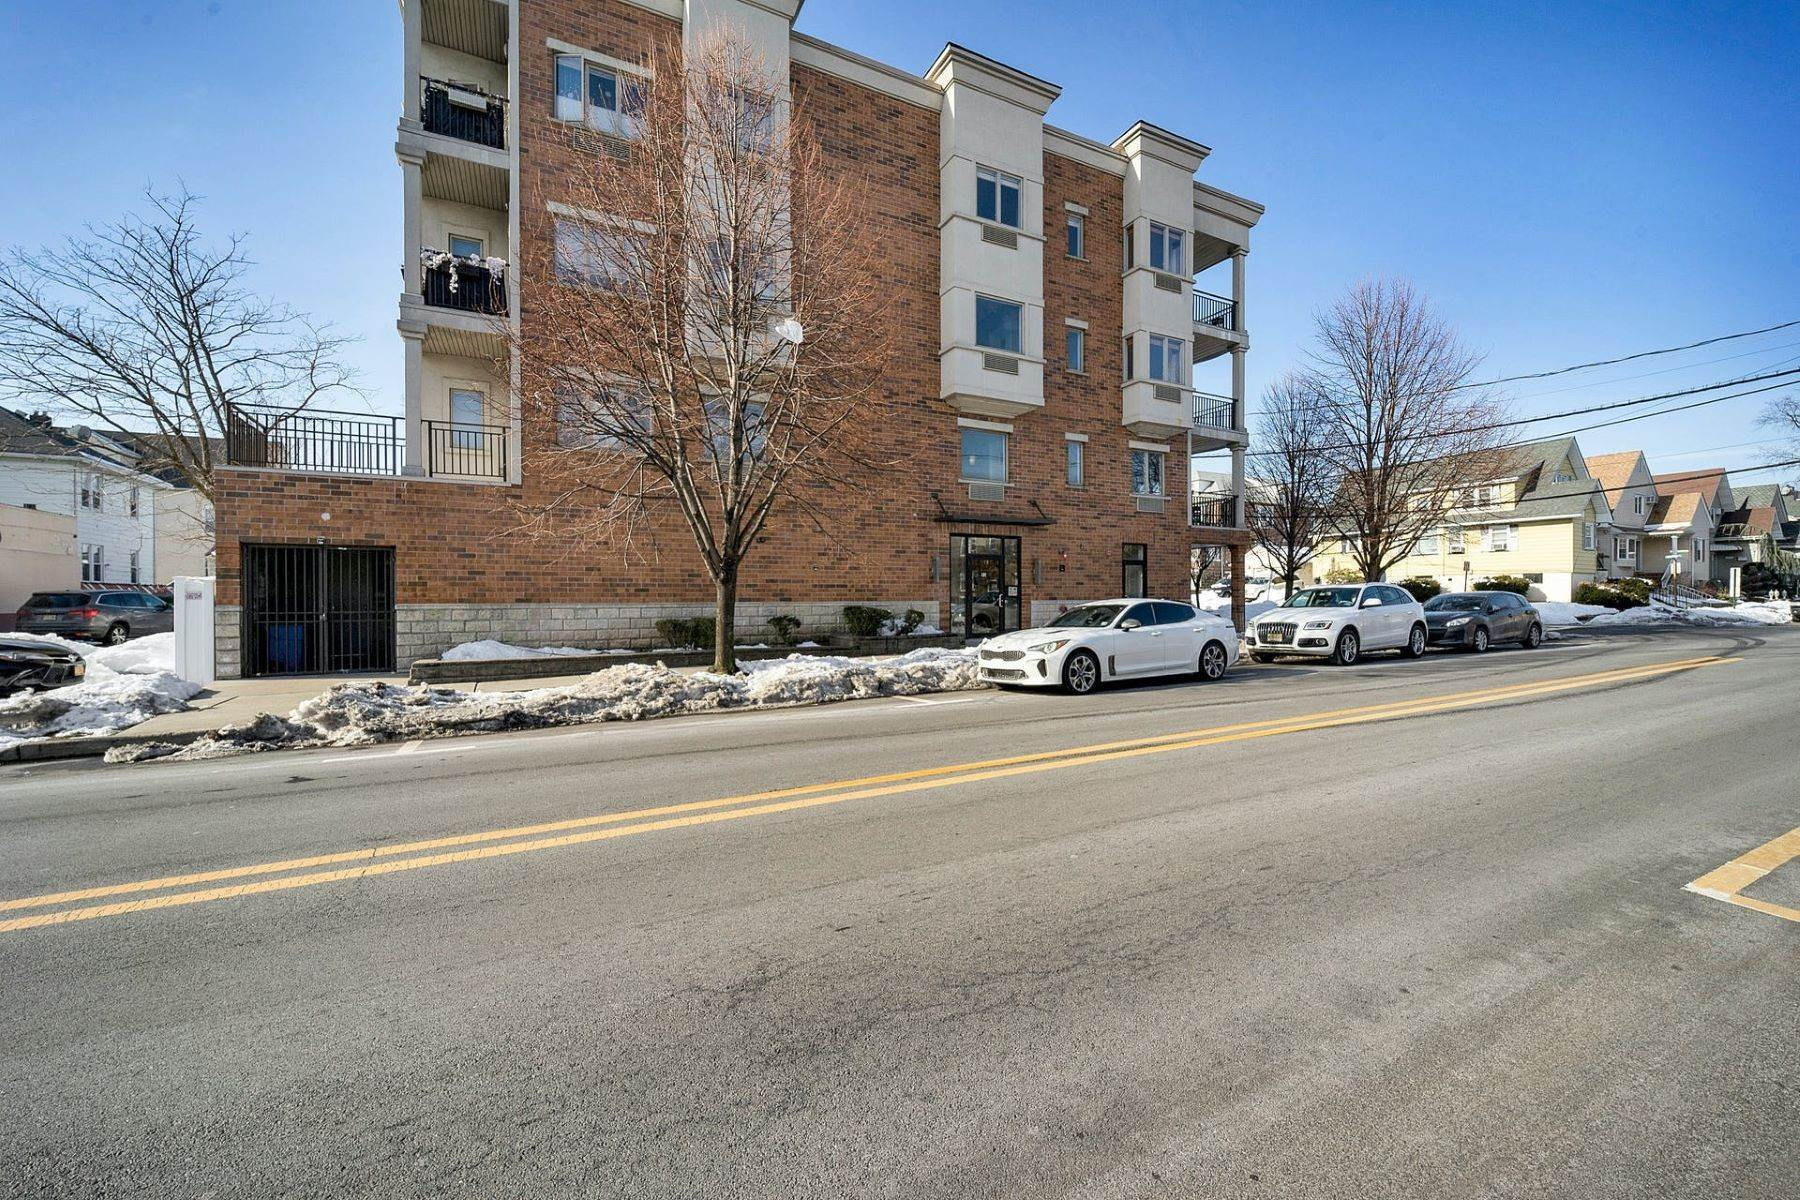 Condominiums for Sale at 93 Palisade Ave 2A, Cliffside Park, NJ 07010 93 Palisade Ave., 2A Cliffside Park, New Jersey 07010 United States